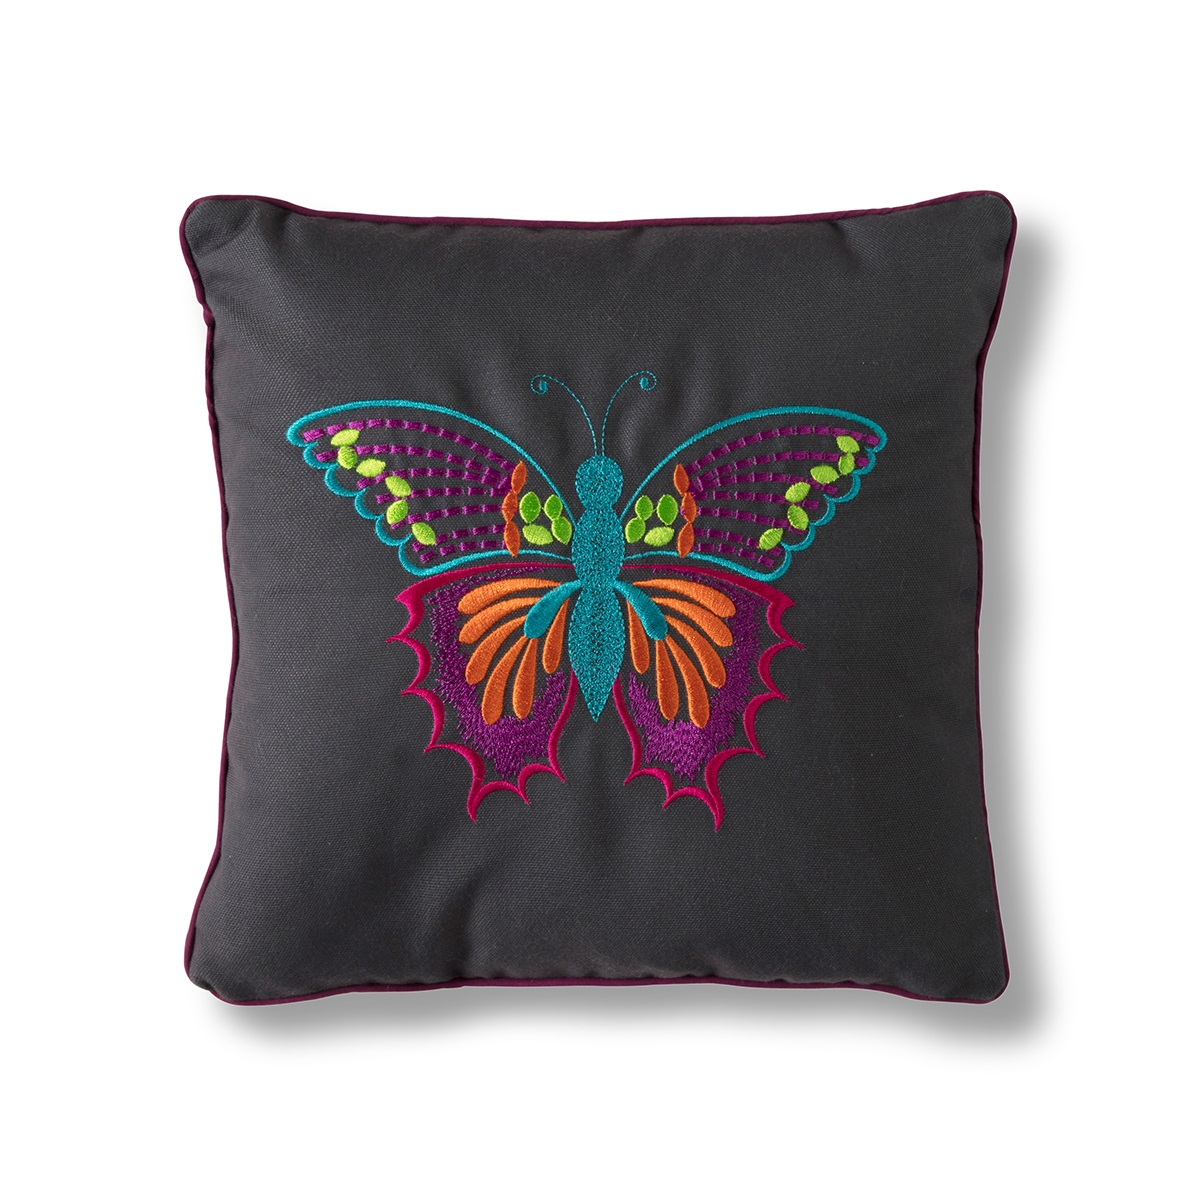 Image of Embroidered Butterfly Cushion - Grey